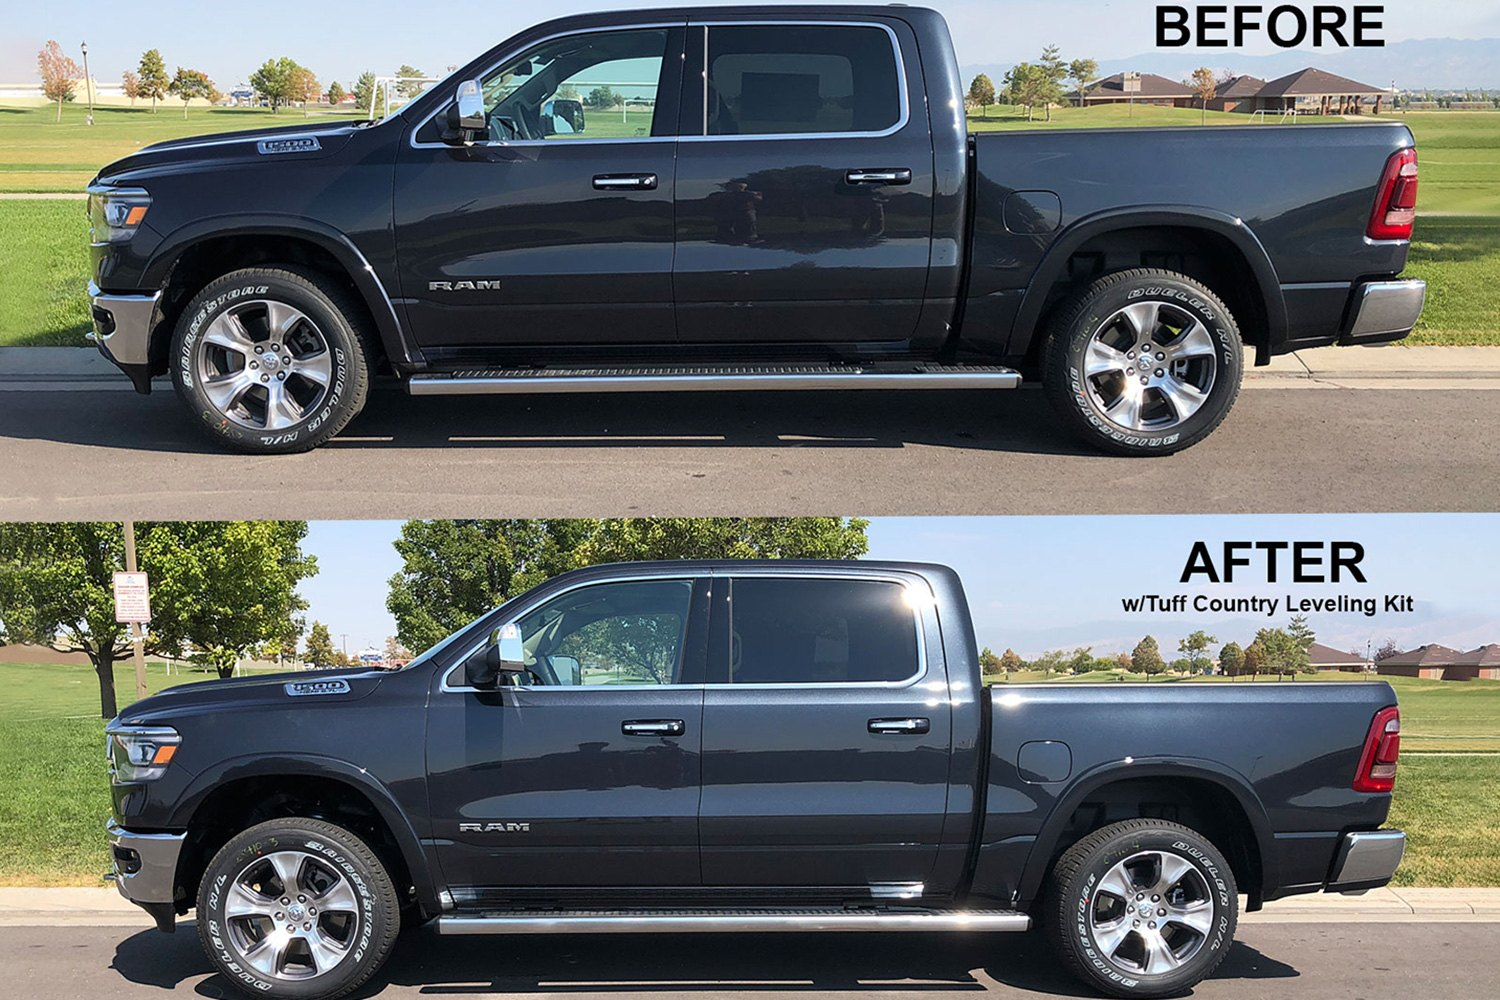 Tacoma Leveling Kit Before And After – Wonderful Image Gallery